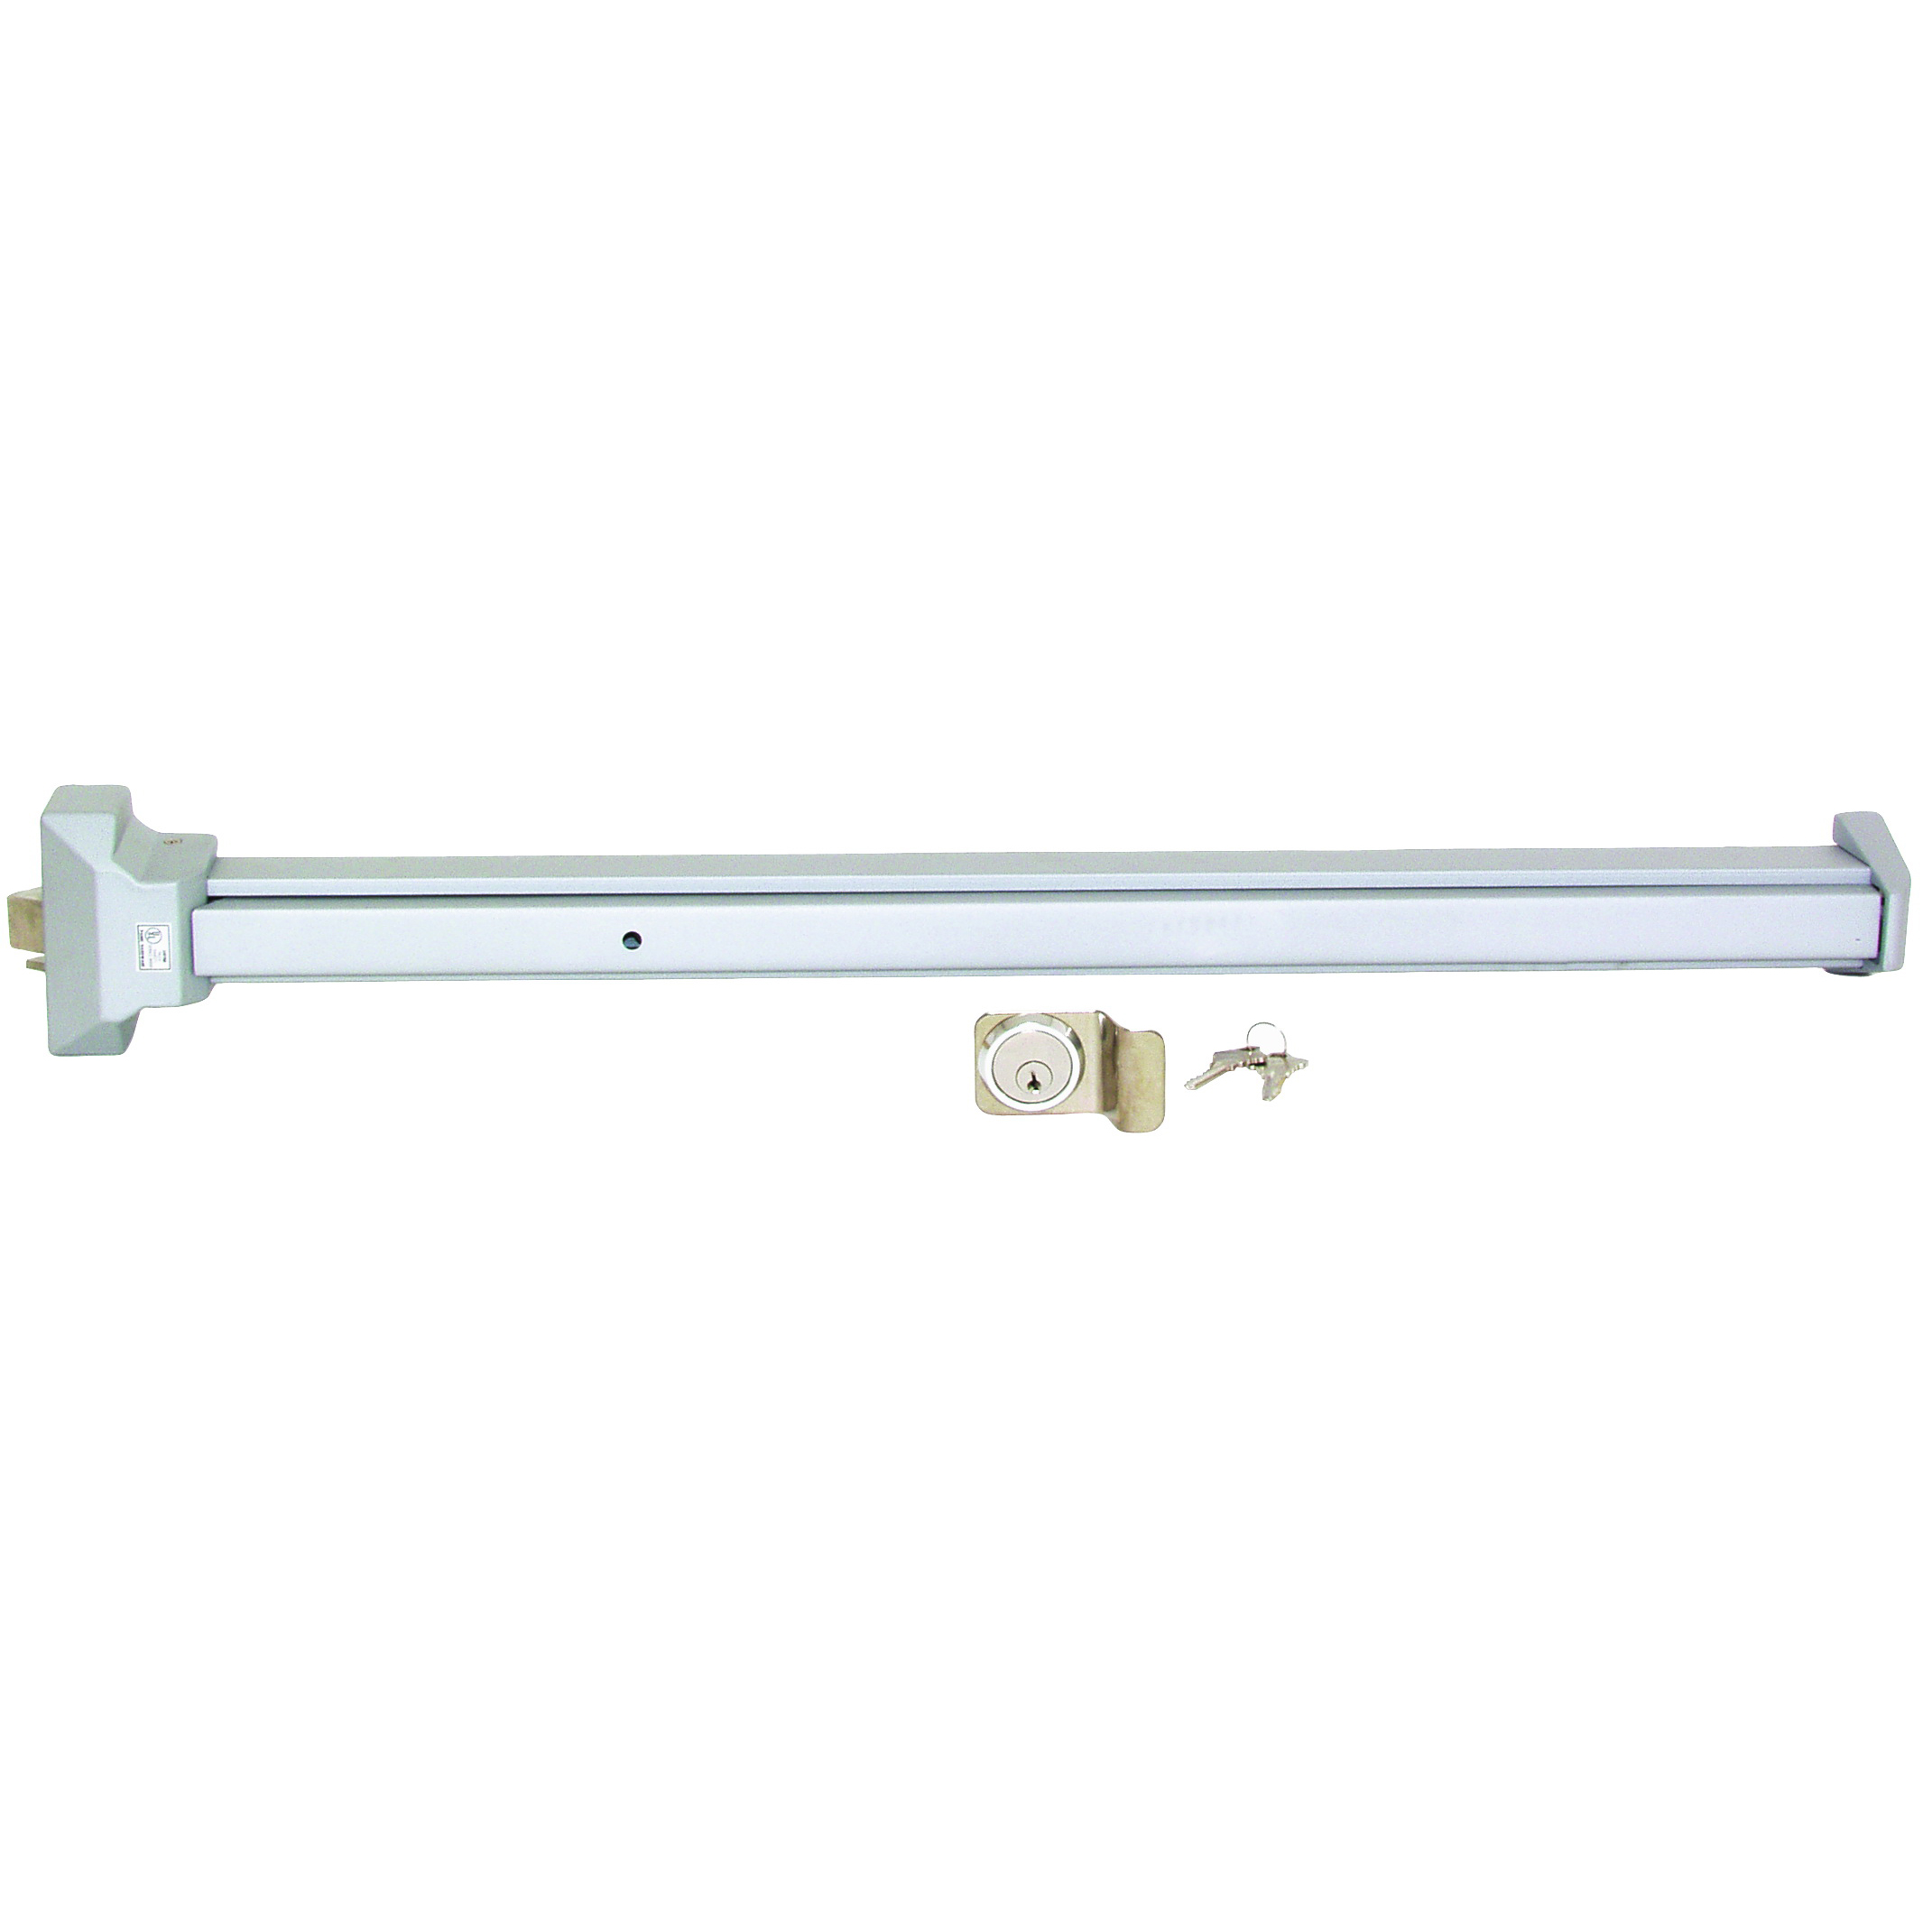 Picture of ProSource 8000-80NLS-AS Panic Bar, Duranodic Aluminum, 1-3/4 in Thick Door